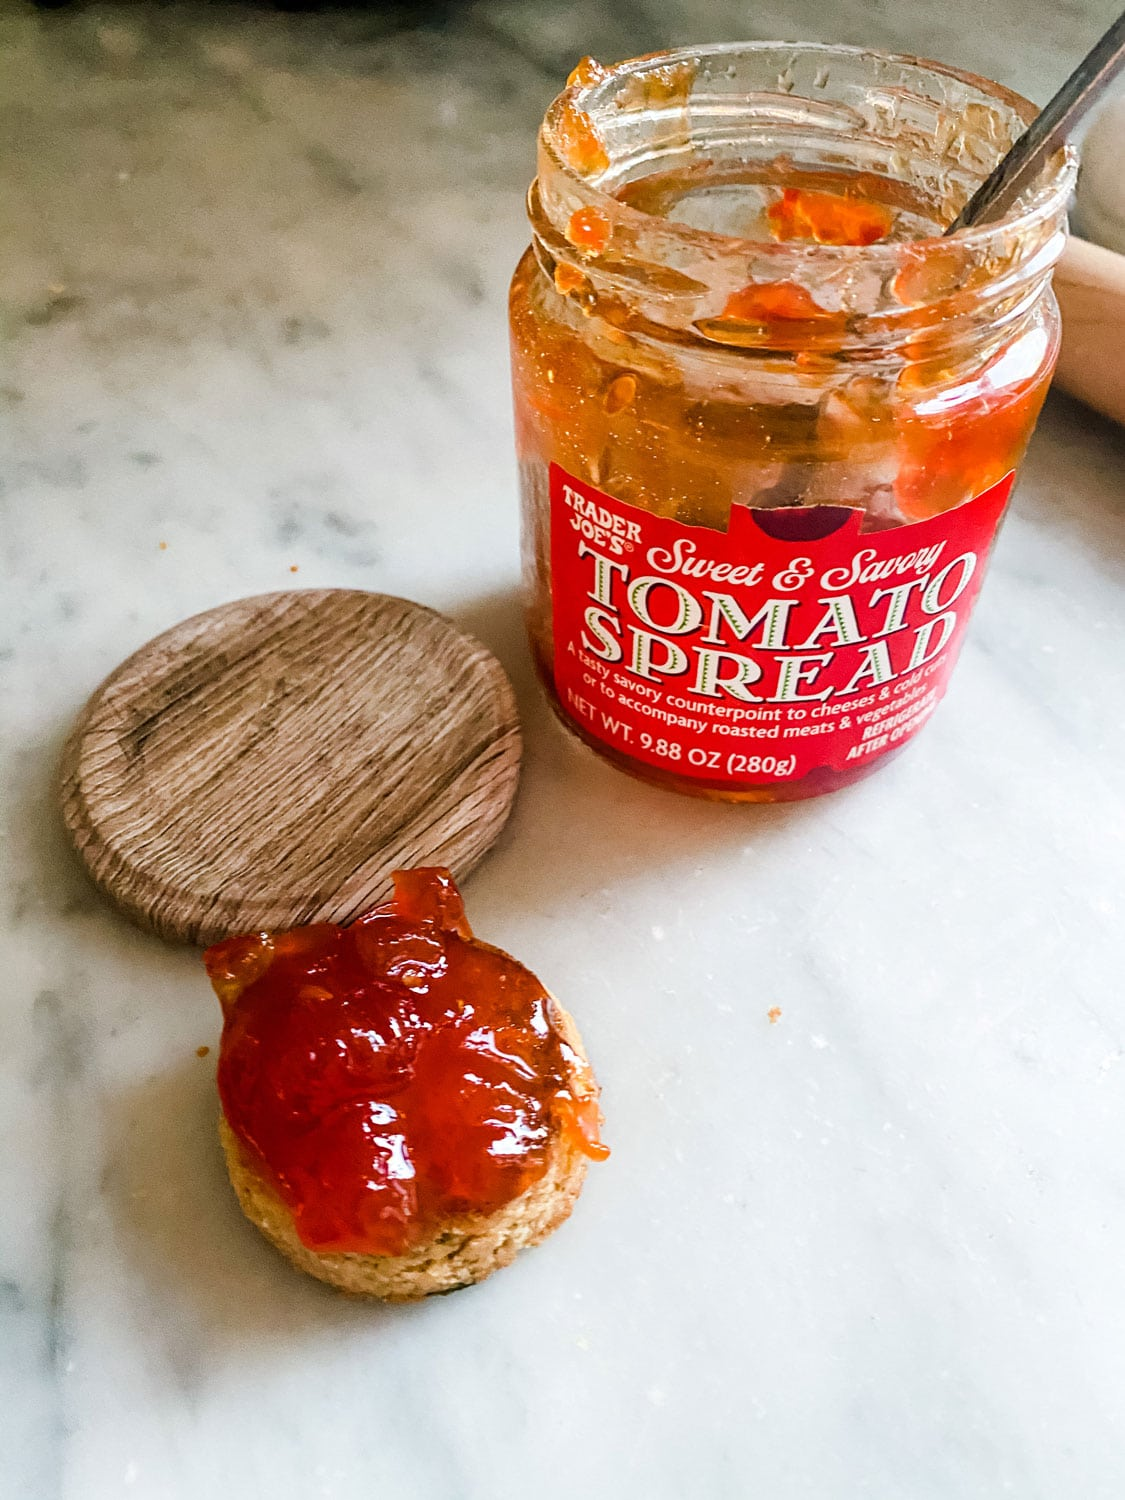 A jar of Trader Joe's tomato spread on a counter with a round cracker